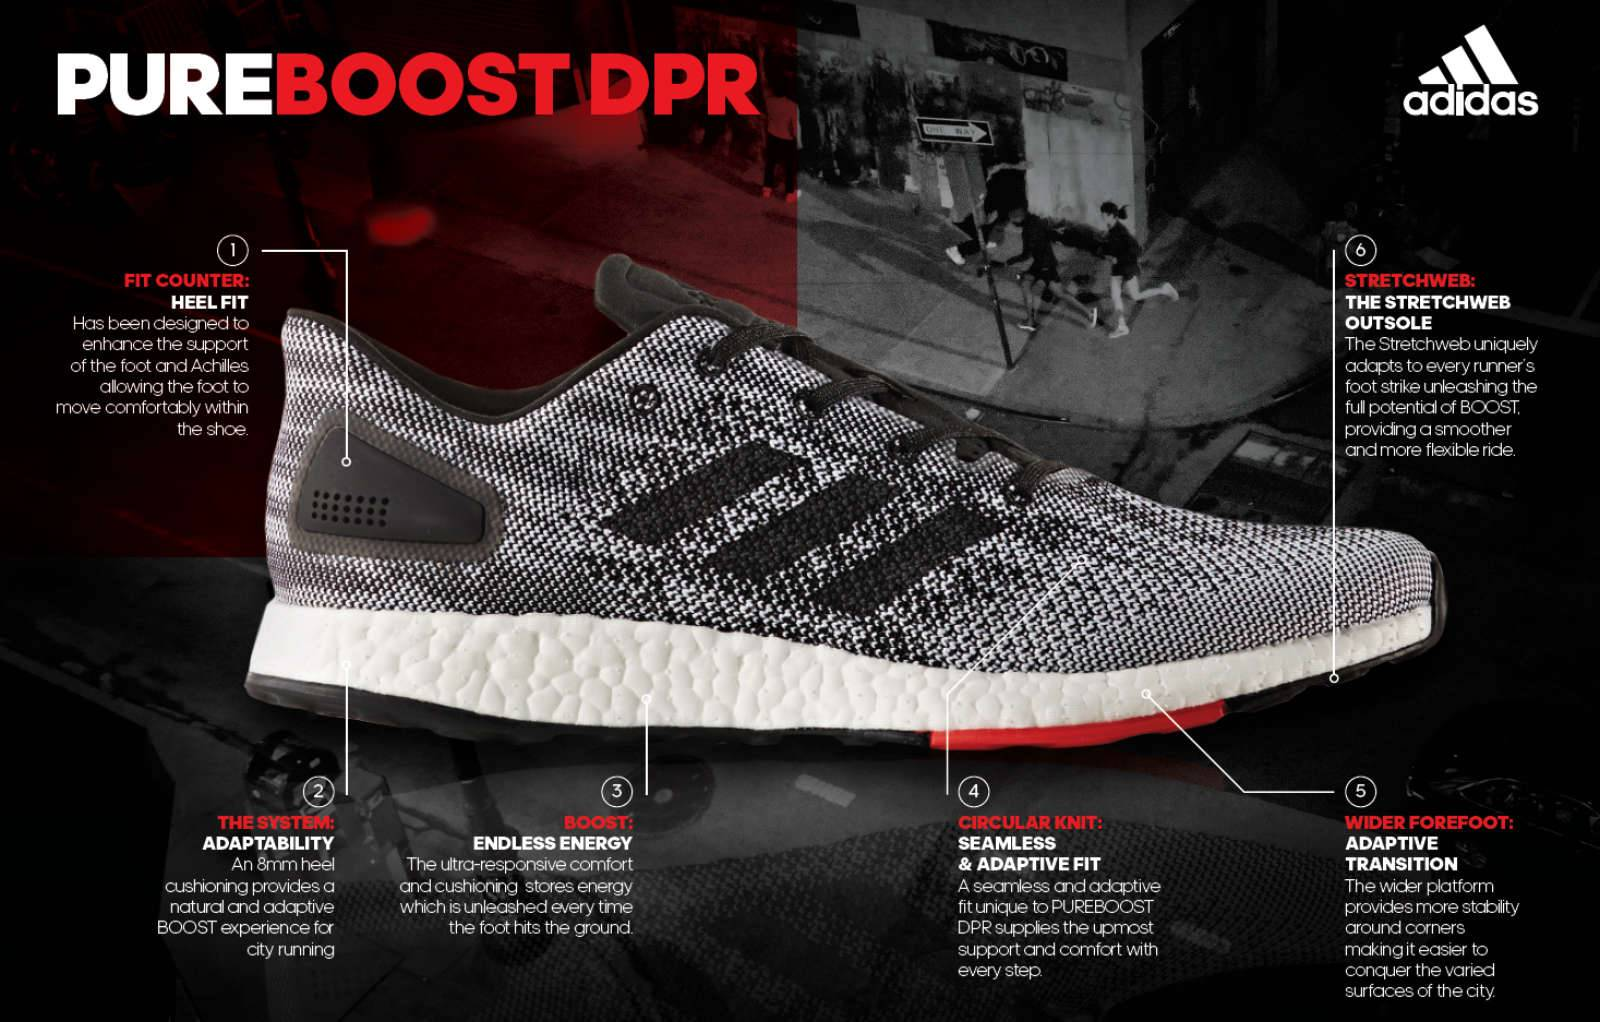 new products 08609 992cc adidas Pureboost DPR review